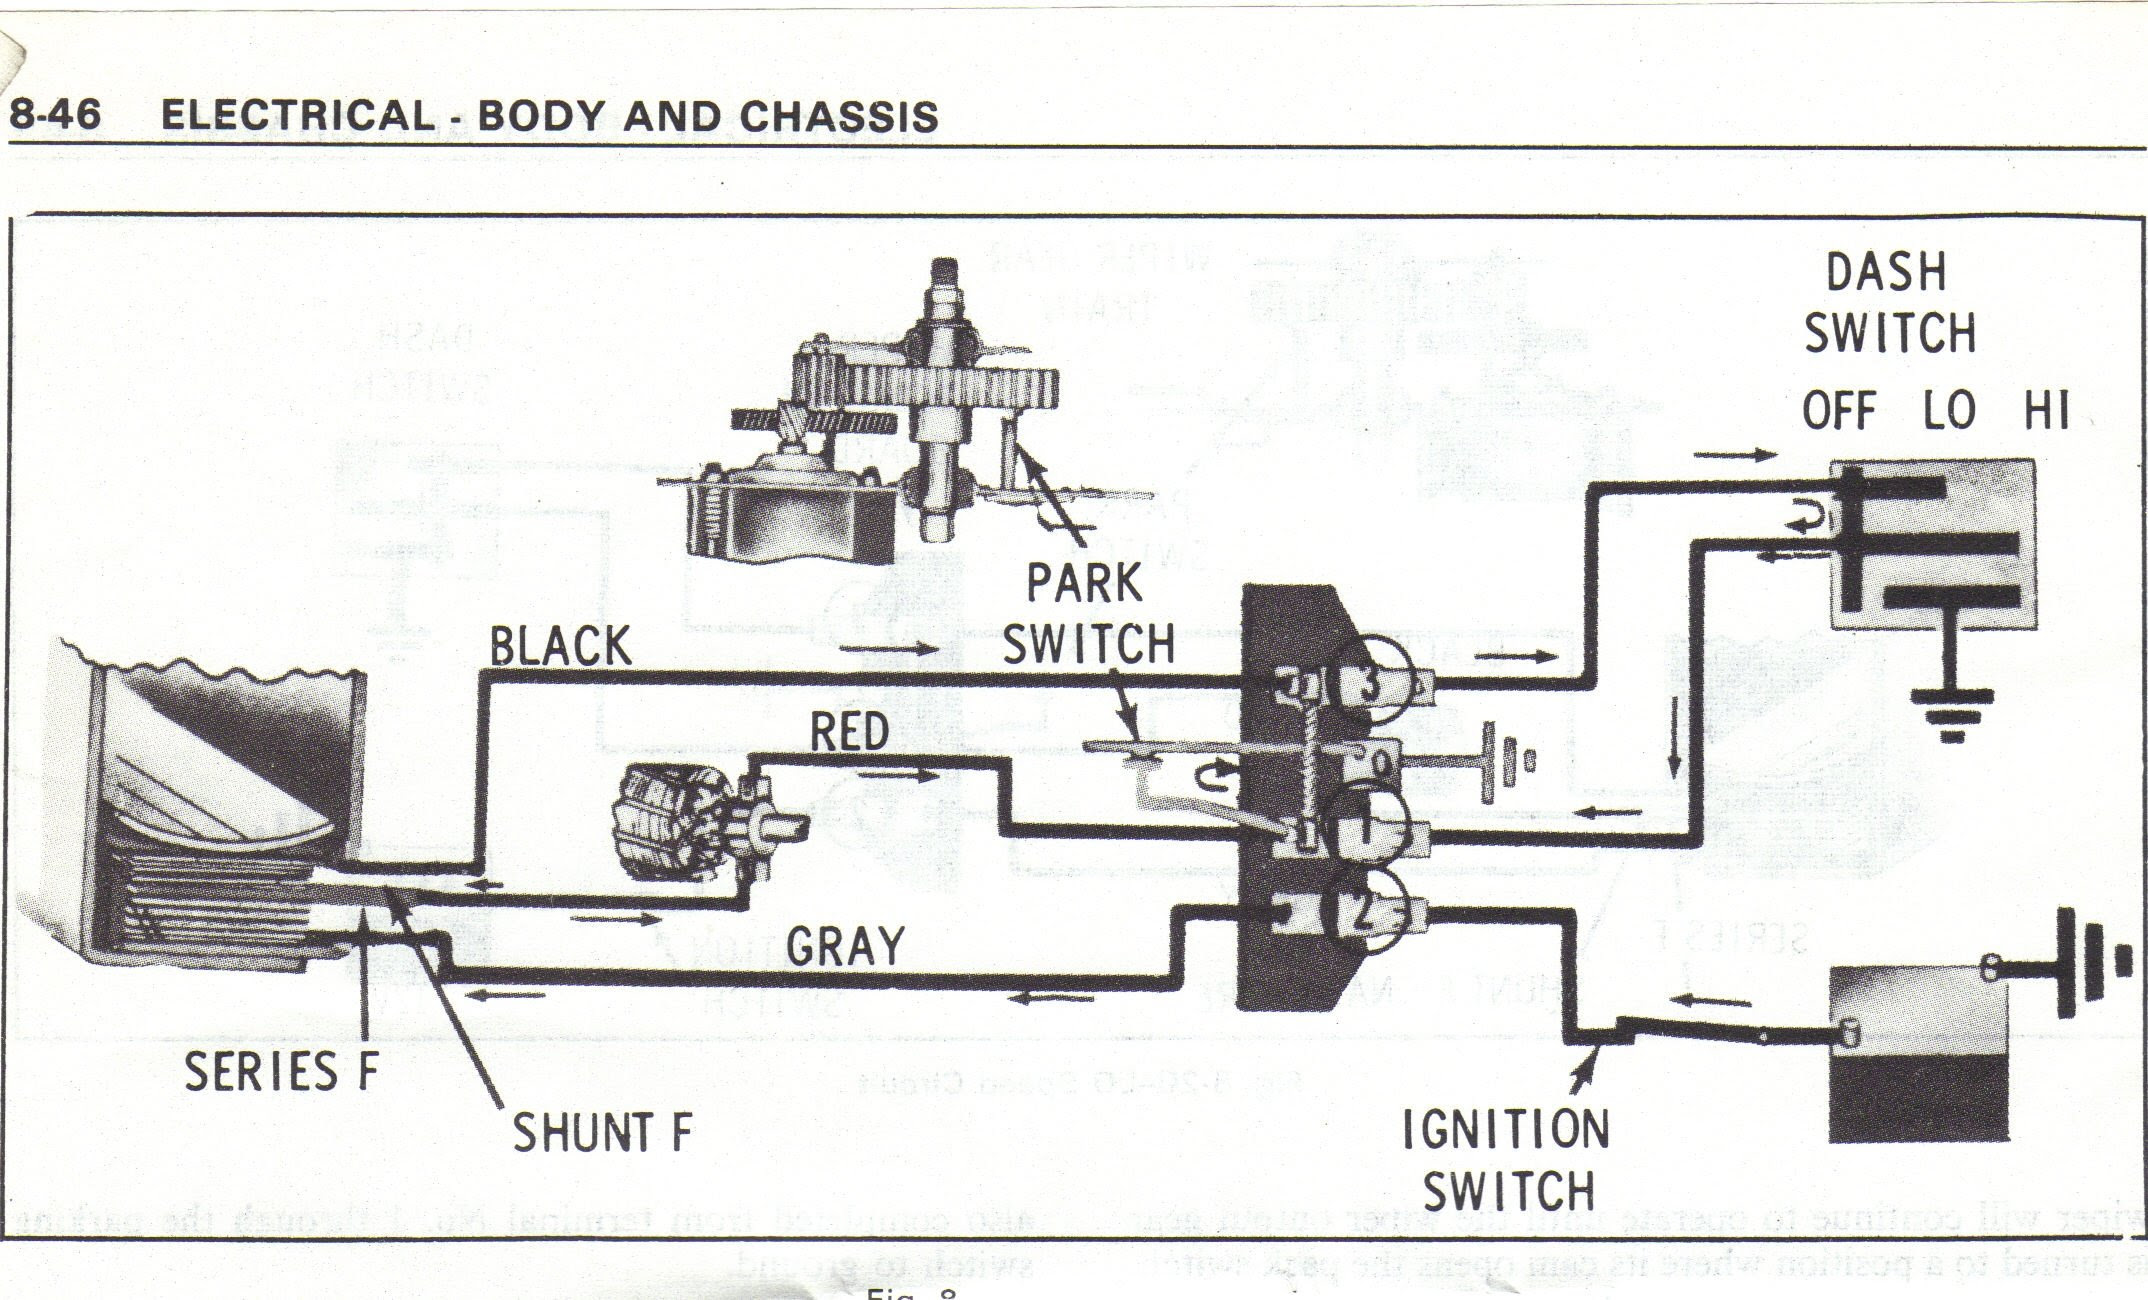 72 Chevy Wiper Wiring Diagram Wiring Diagram Report A Report A Maceratadoc It